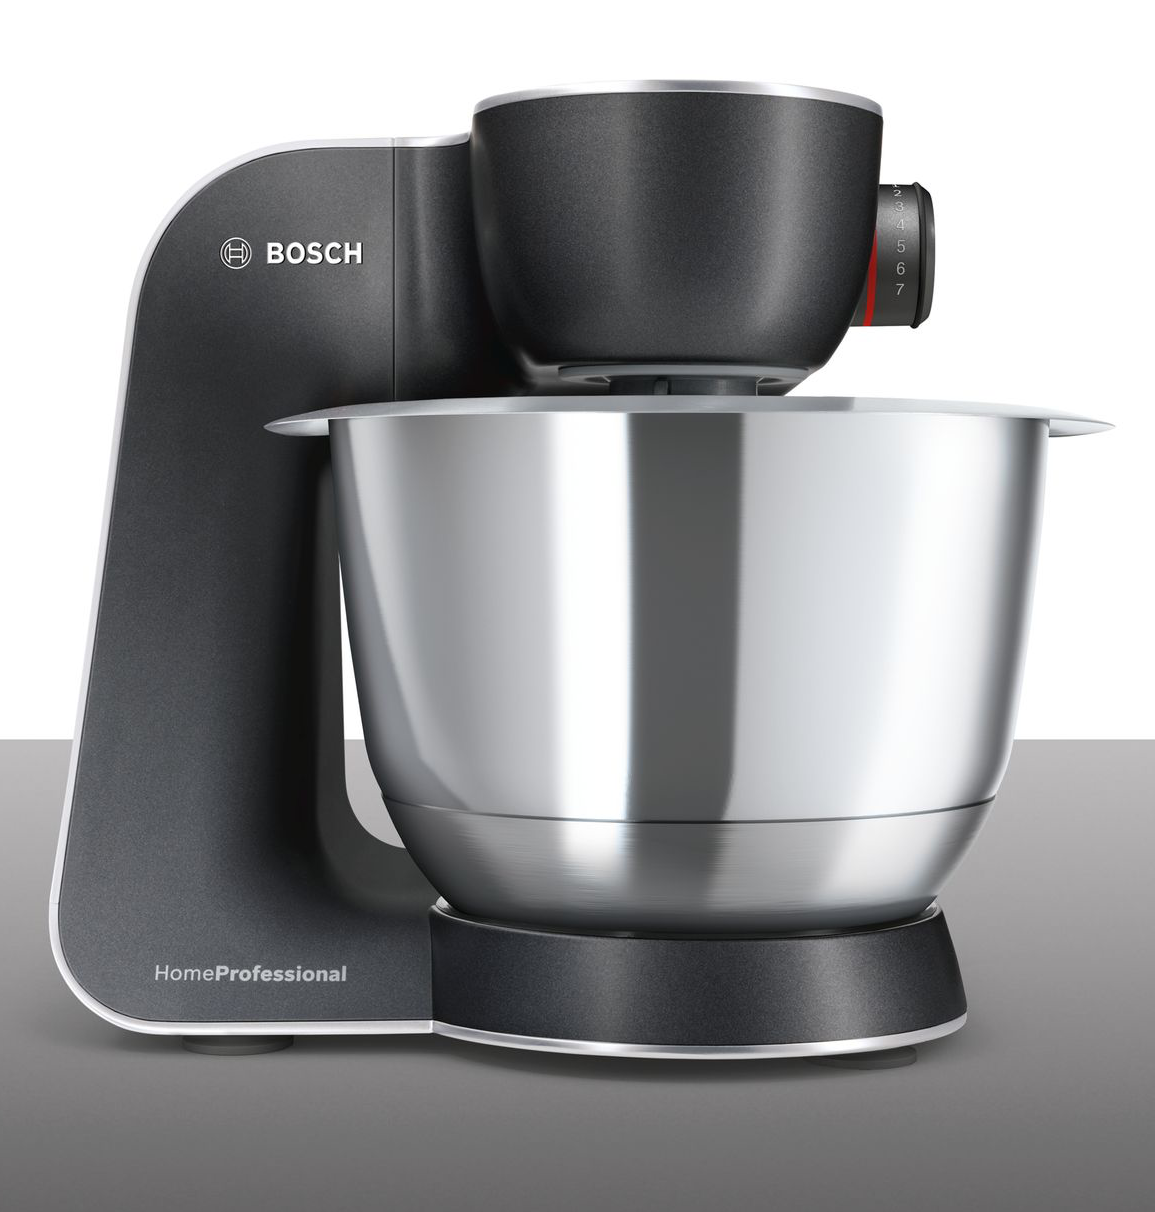 Küchenmaschine Bosch Vs Kitchenaid Bosch Mum 5 Kitchen Mixer Household In 2019 Kitchen